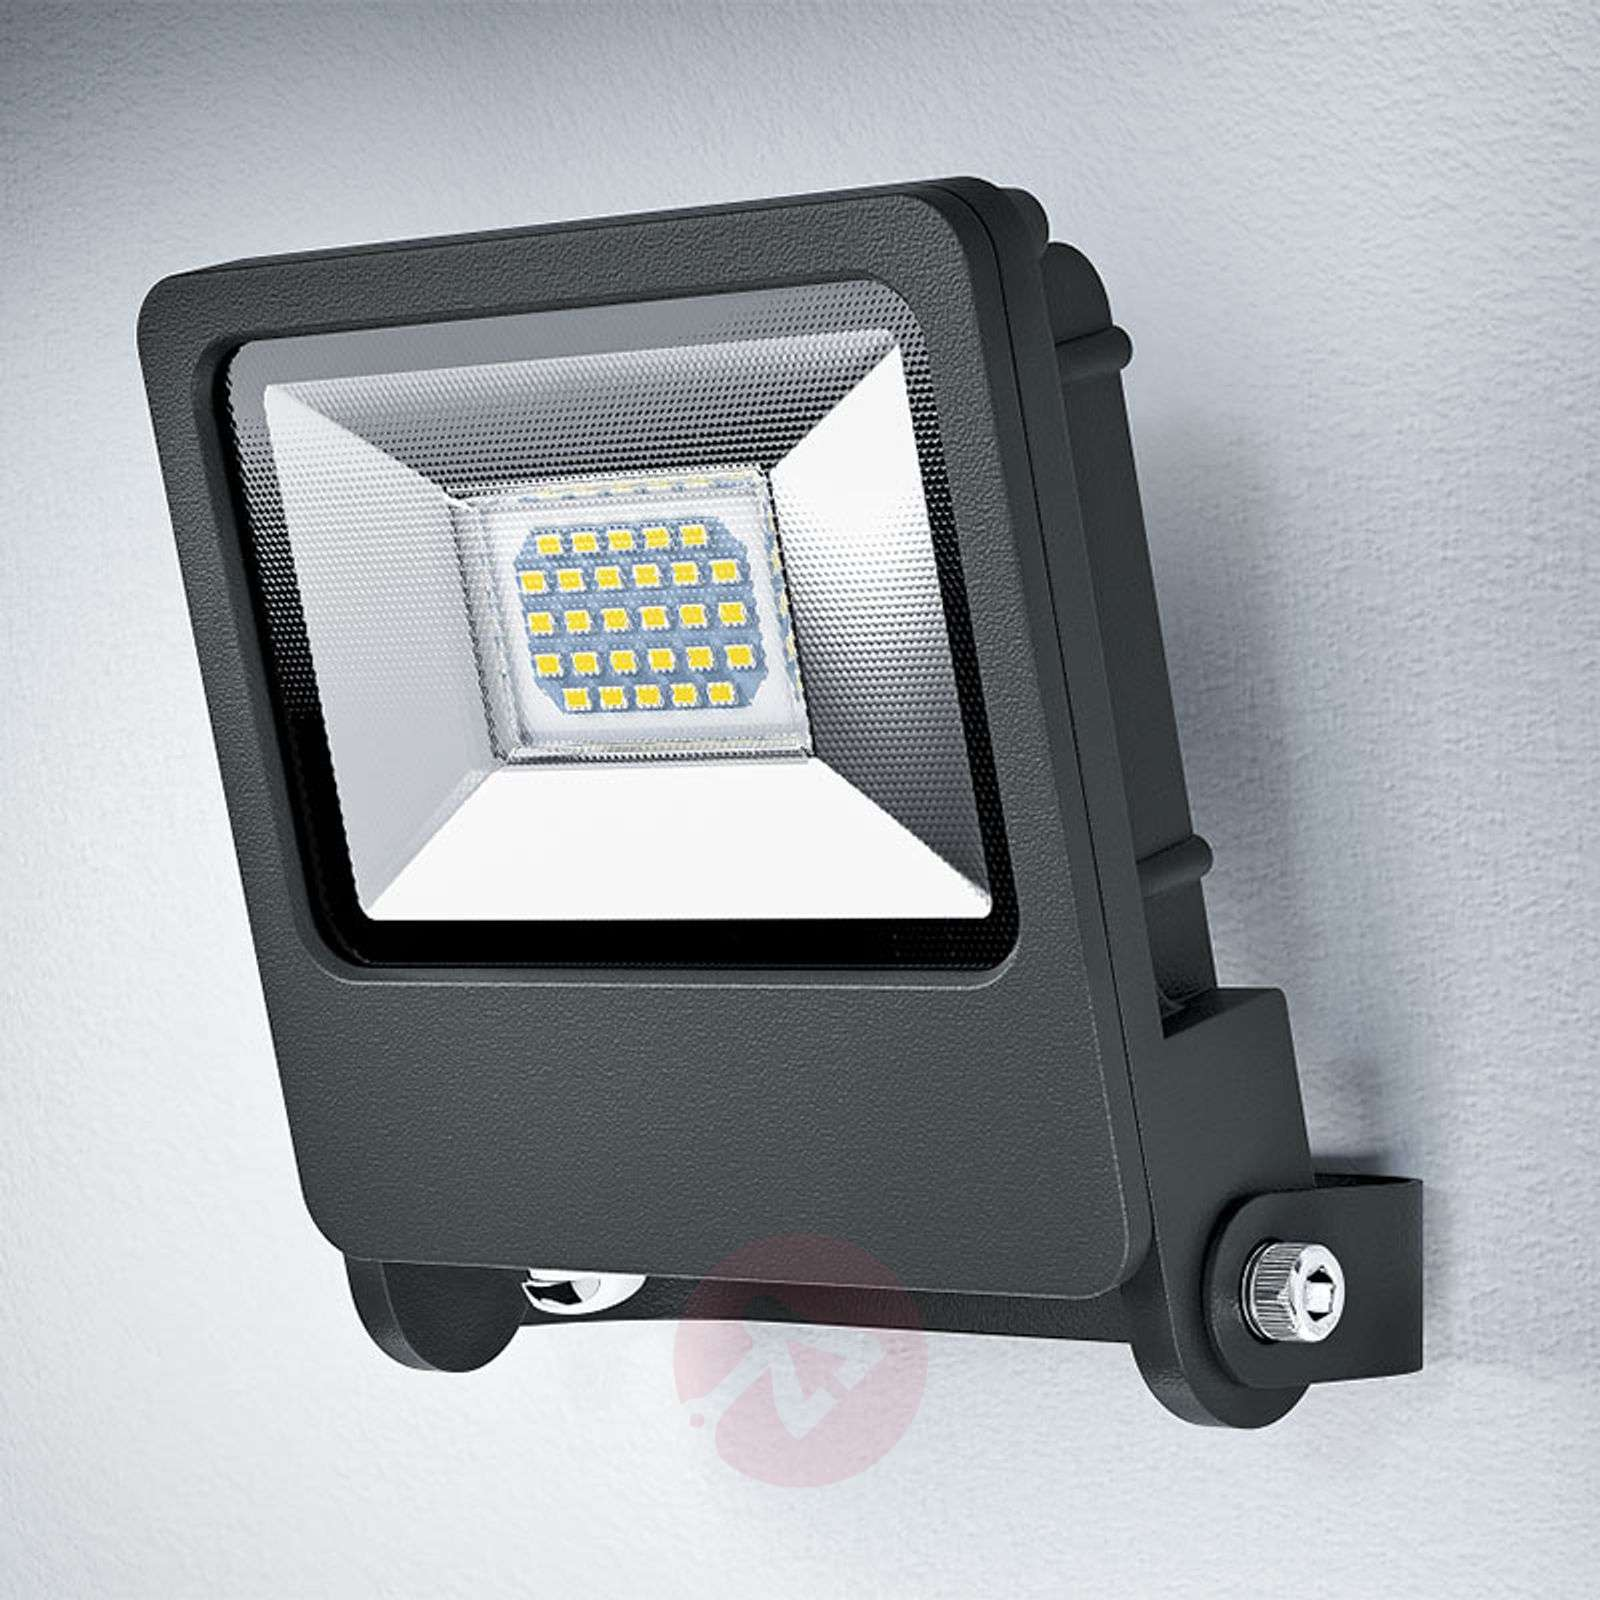 Projecteur extérieur LED compact Endura Floodlight-7261305-04